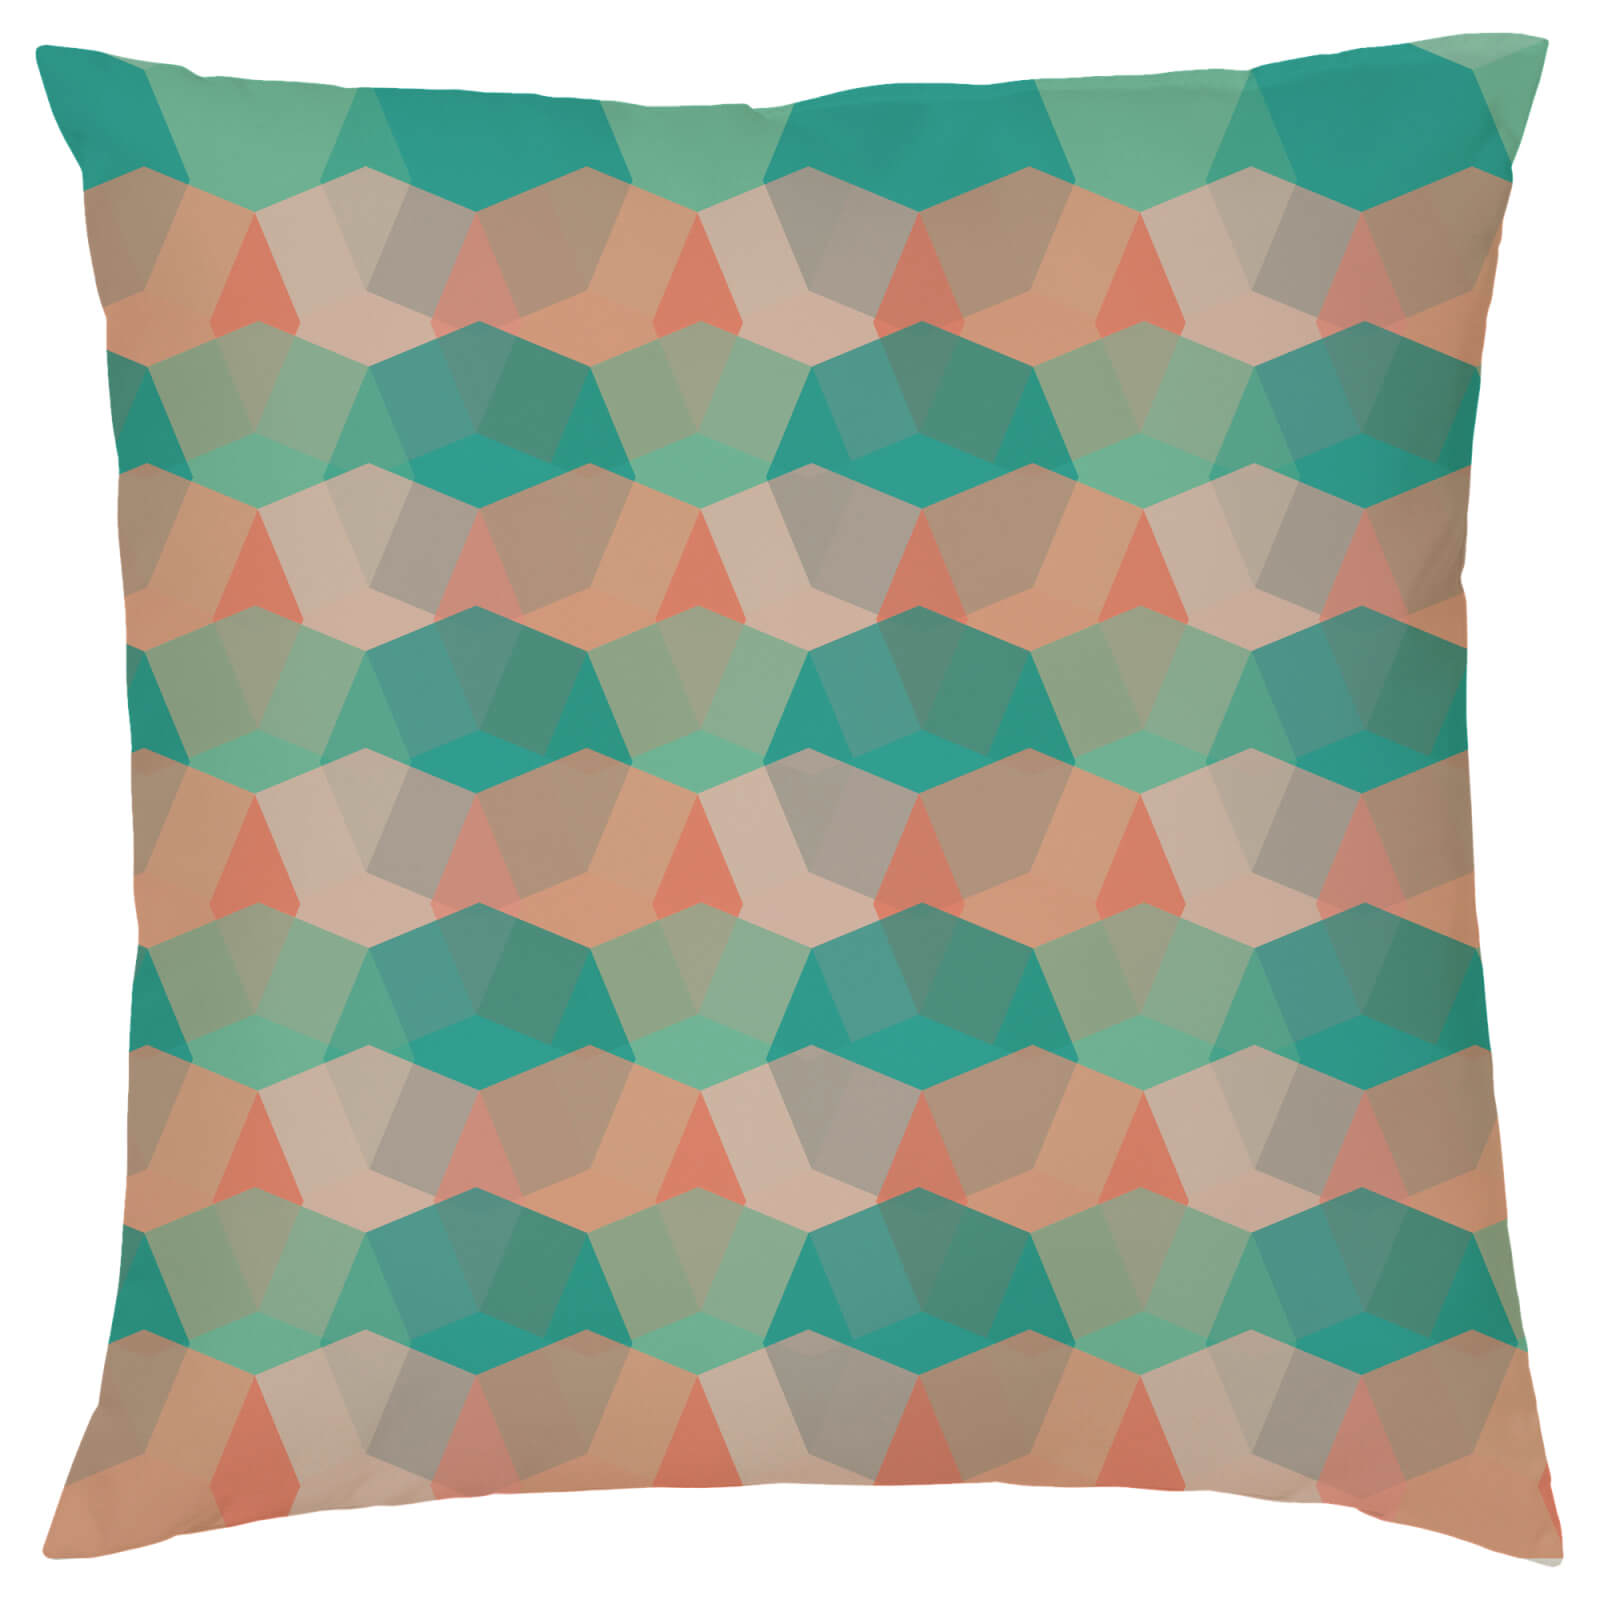 Geometric Repeat Cushion - Teal & Orange